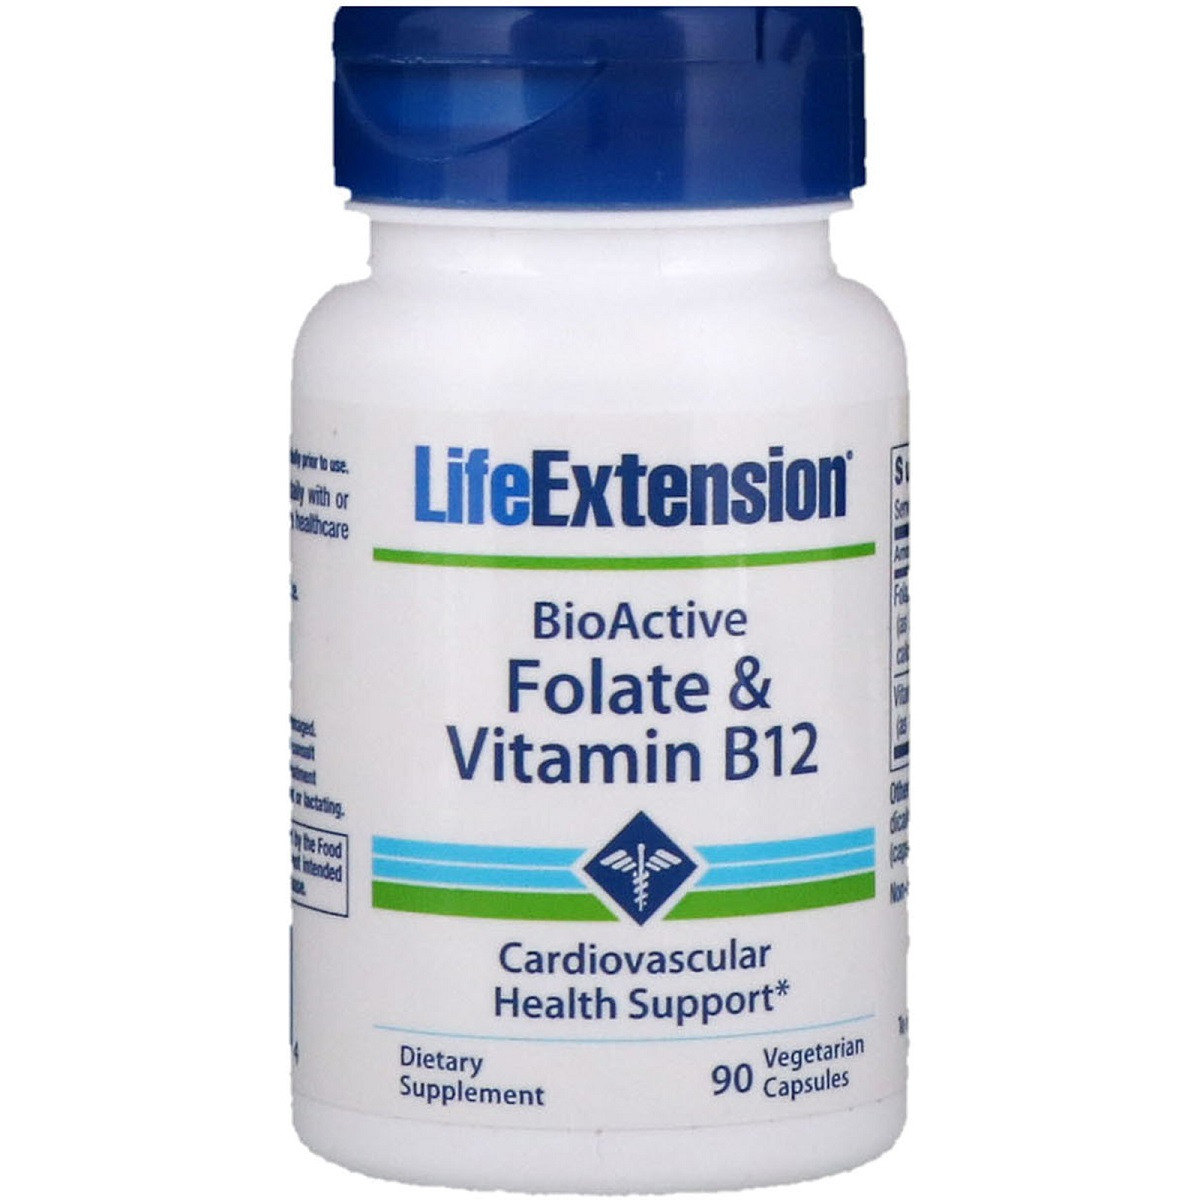 Фолат и B12, BioActive Folate & Vitamin B12, Life Extension, 90 Вегетарианских Капсул